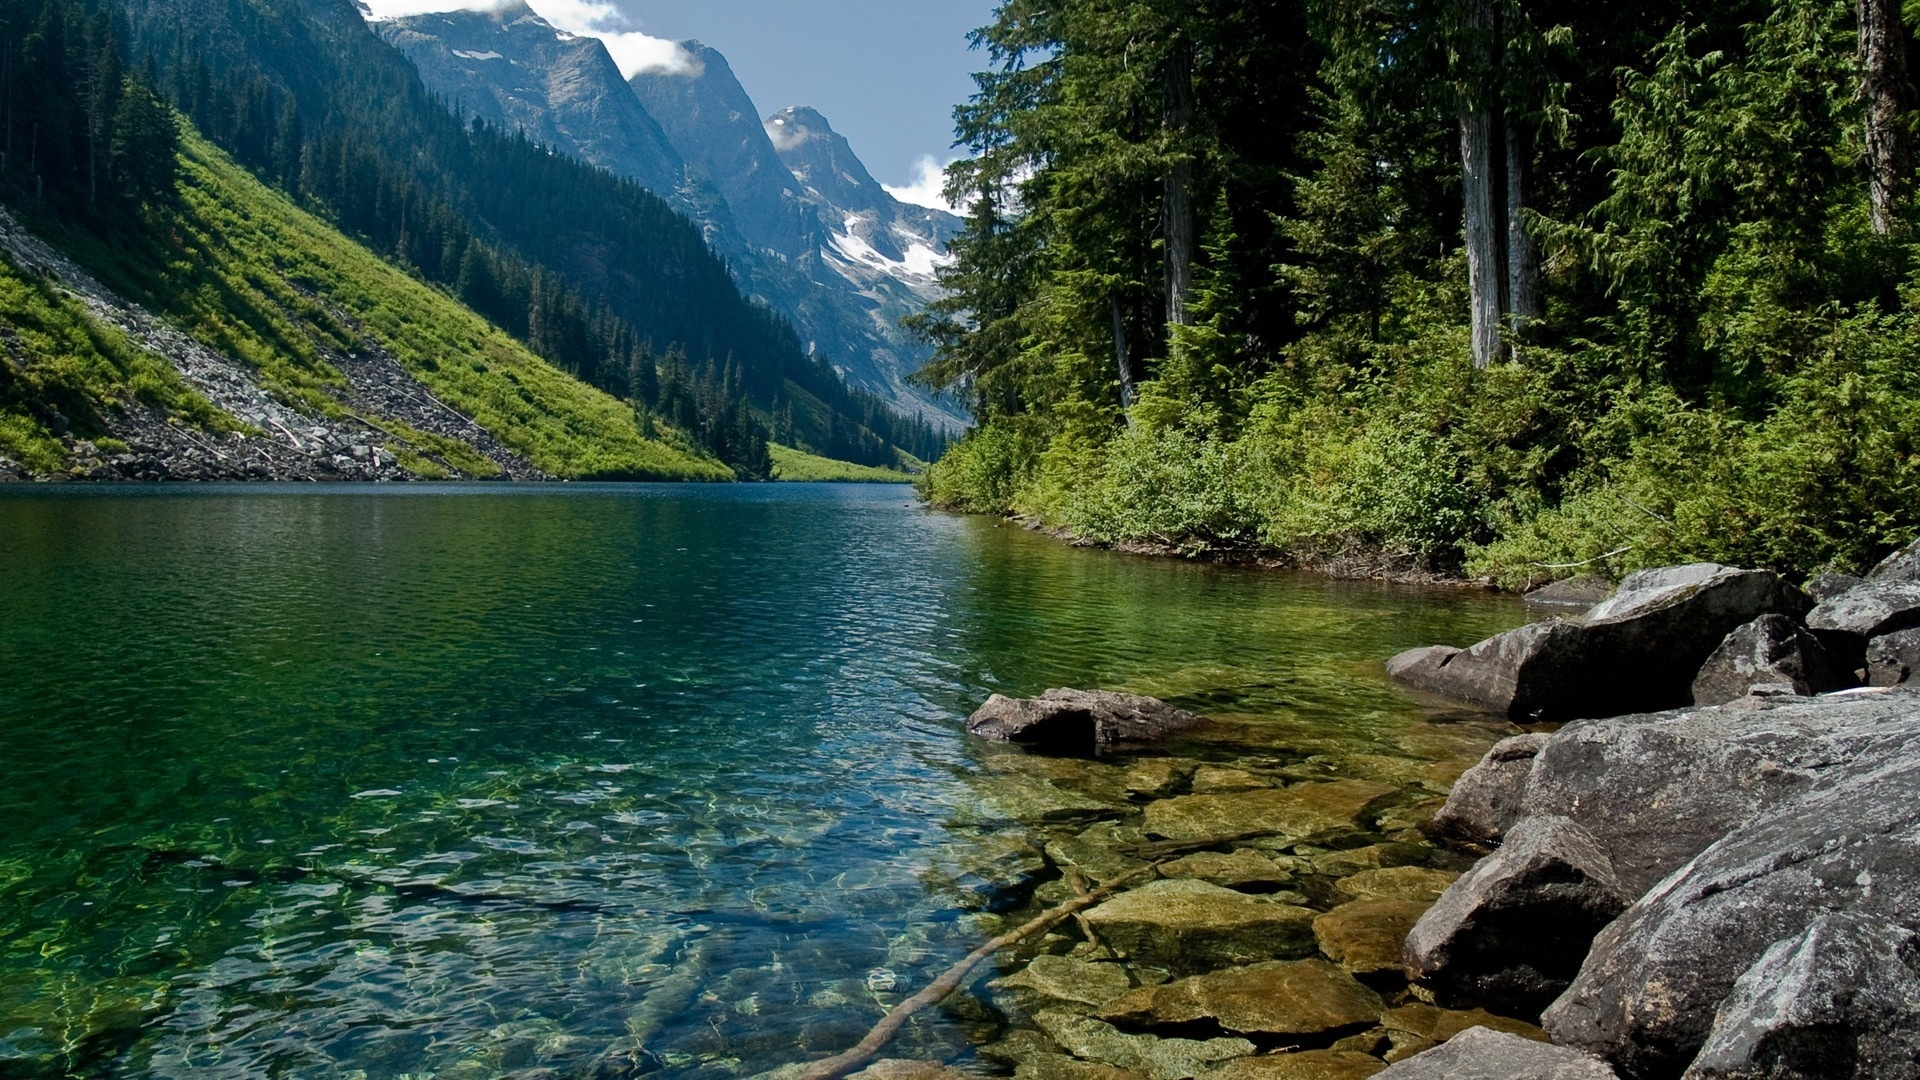 23259 download wallpaper Landscape, Rivers, Trees, Mountains screensavers and pictures for free